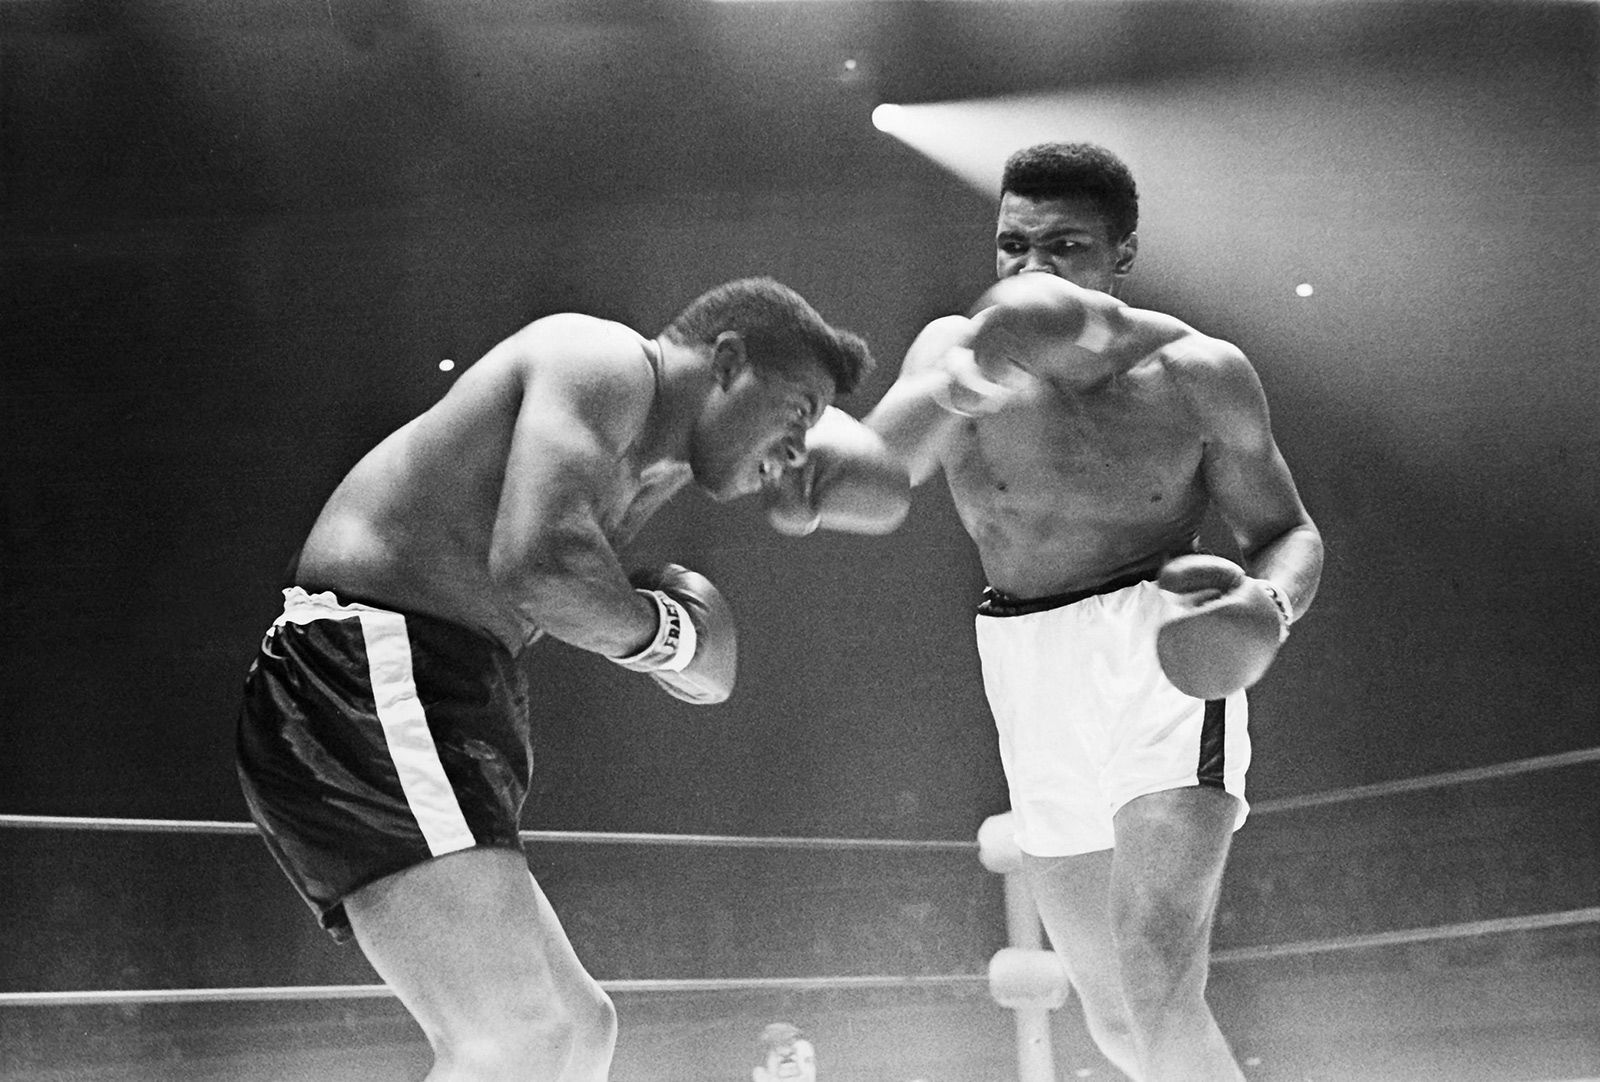 Patterson on the left deflecting with his left arm, Ali on the right on the tail end of a swing with his right.